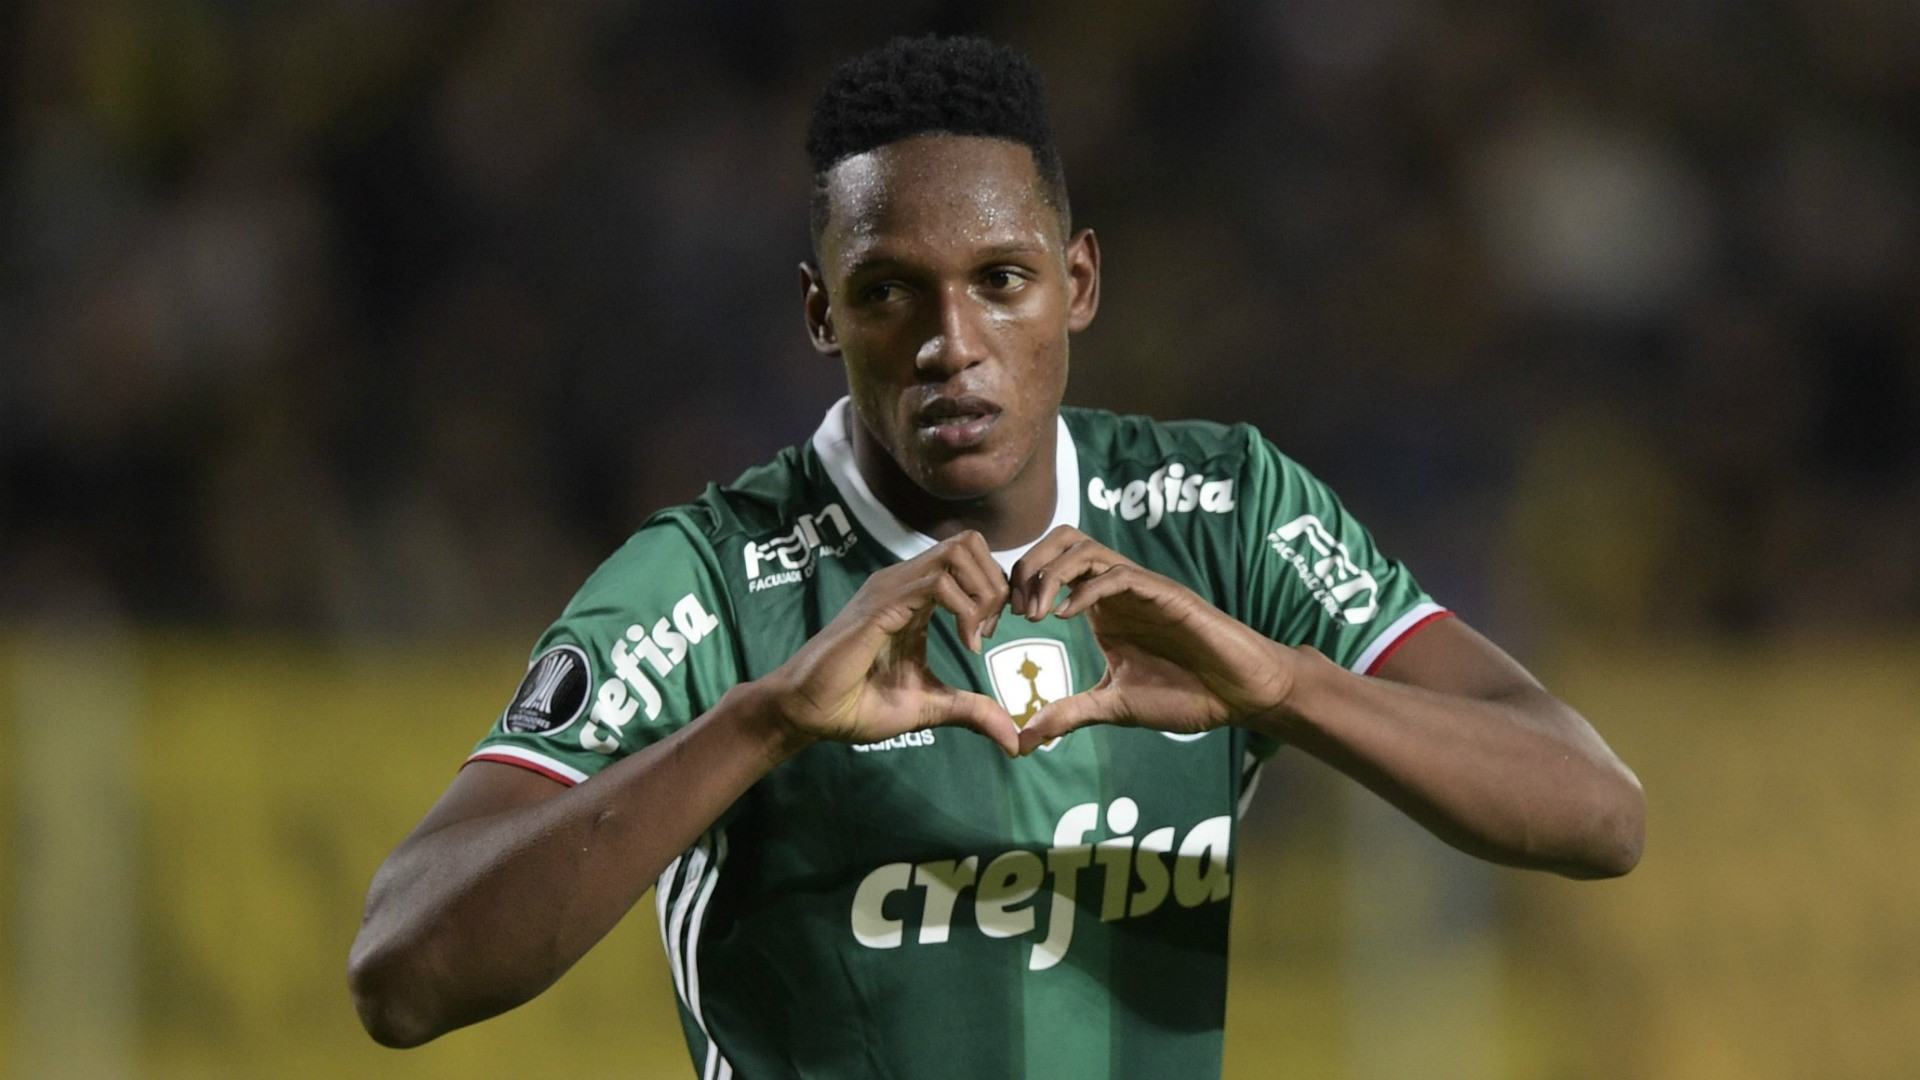 https://images.performgroup.com/di/library/GOAL/9c/0/yerry-mina-palmeiras_11jfwdqno3nb81ks4s5lz36fx2.jpg?t=-644170648&quality=90&w=0&h=1260